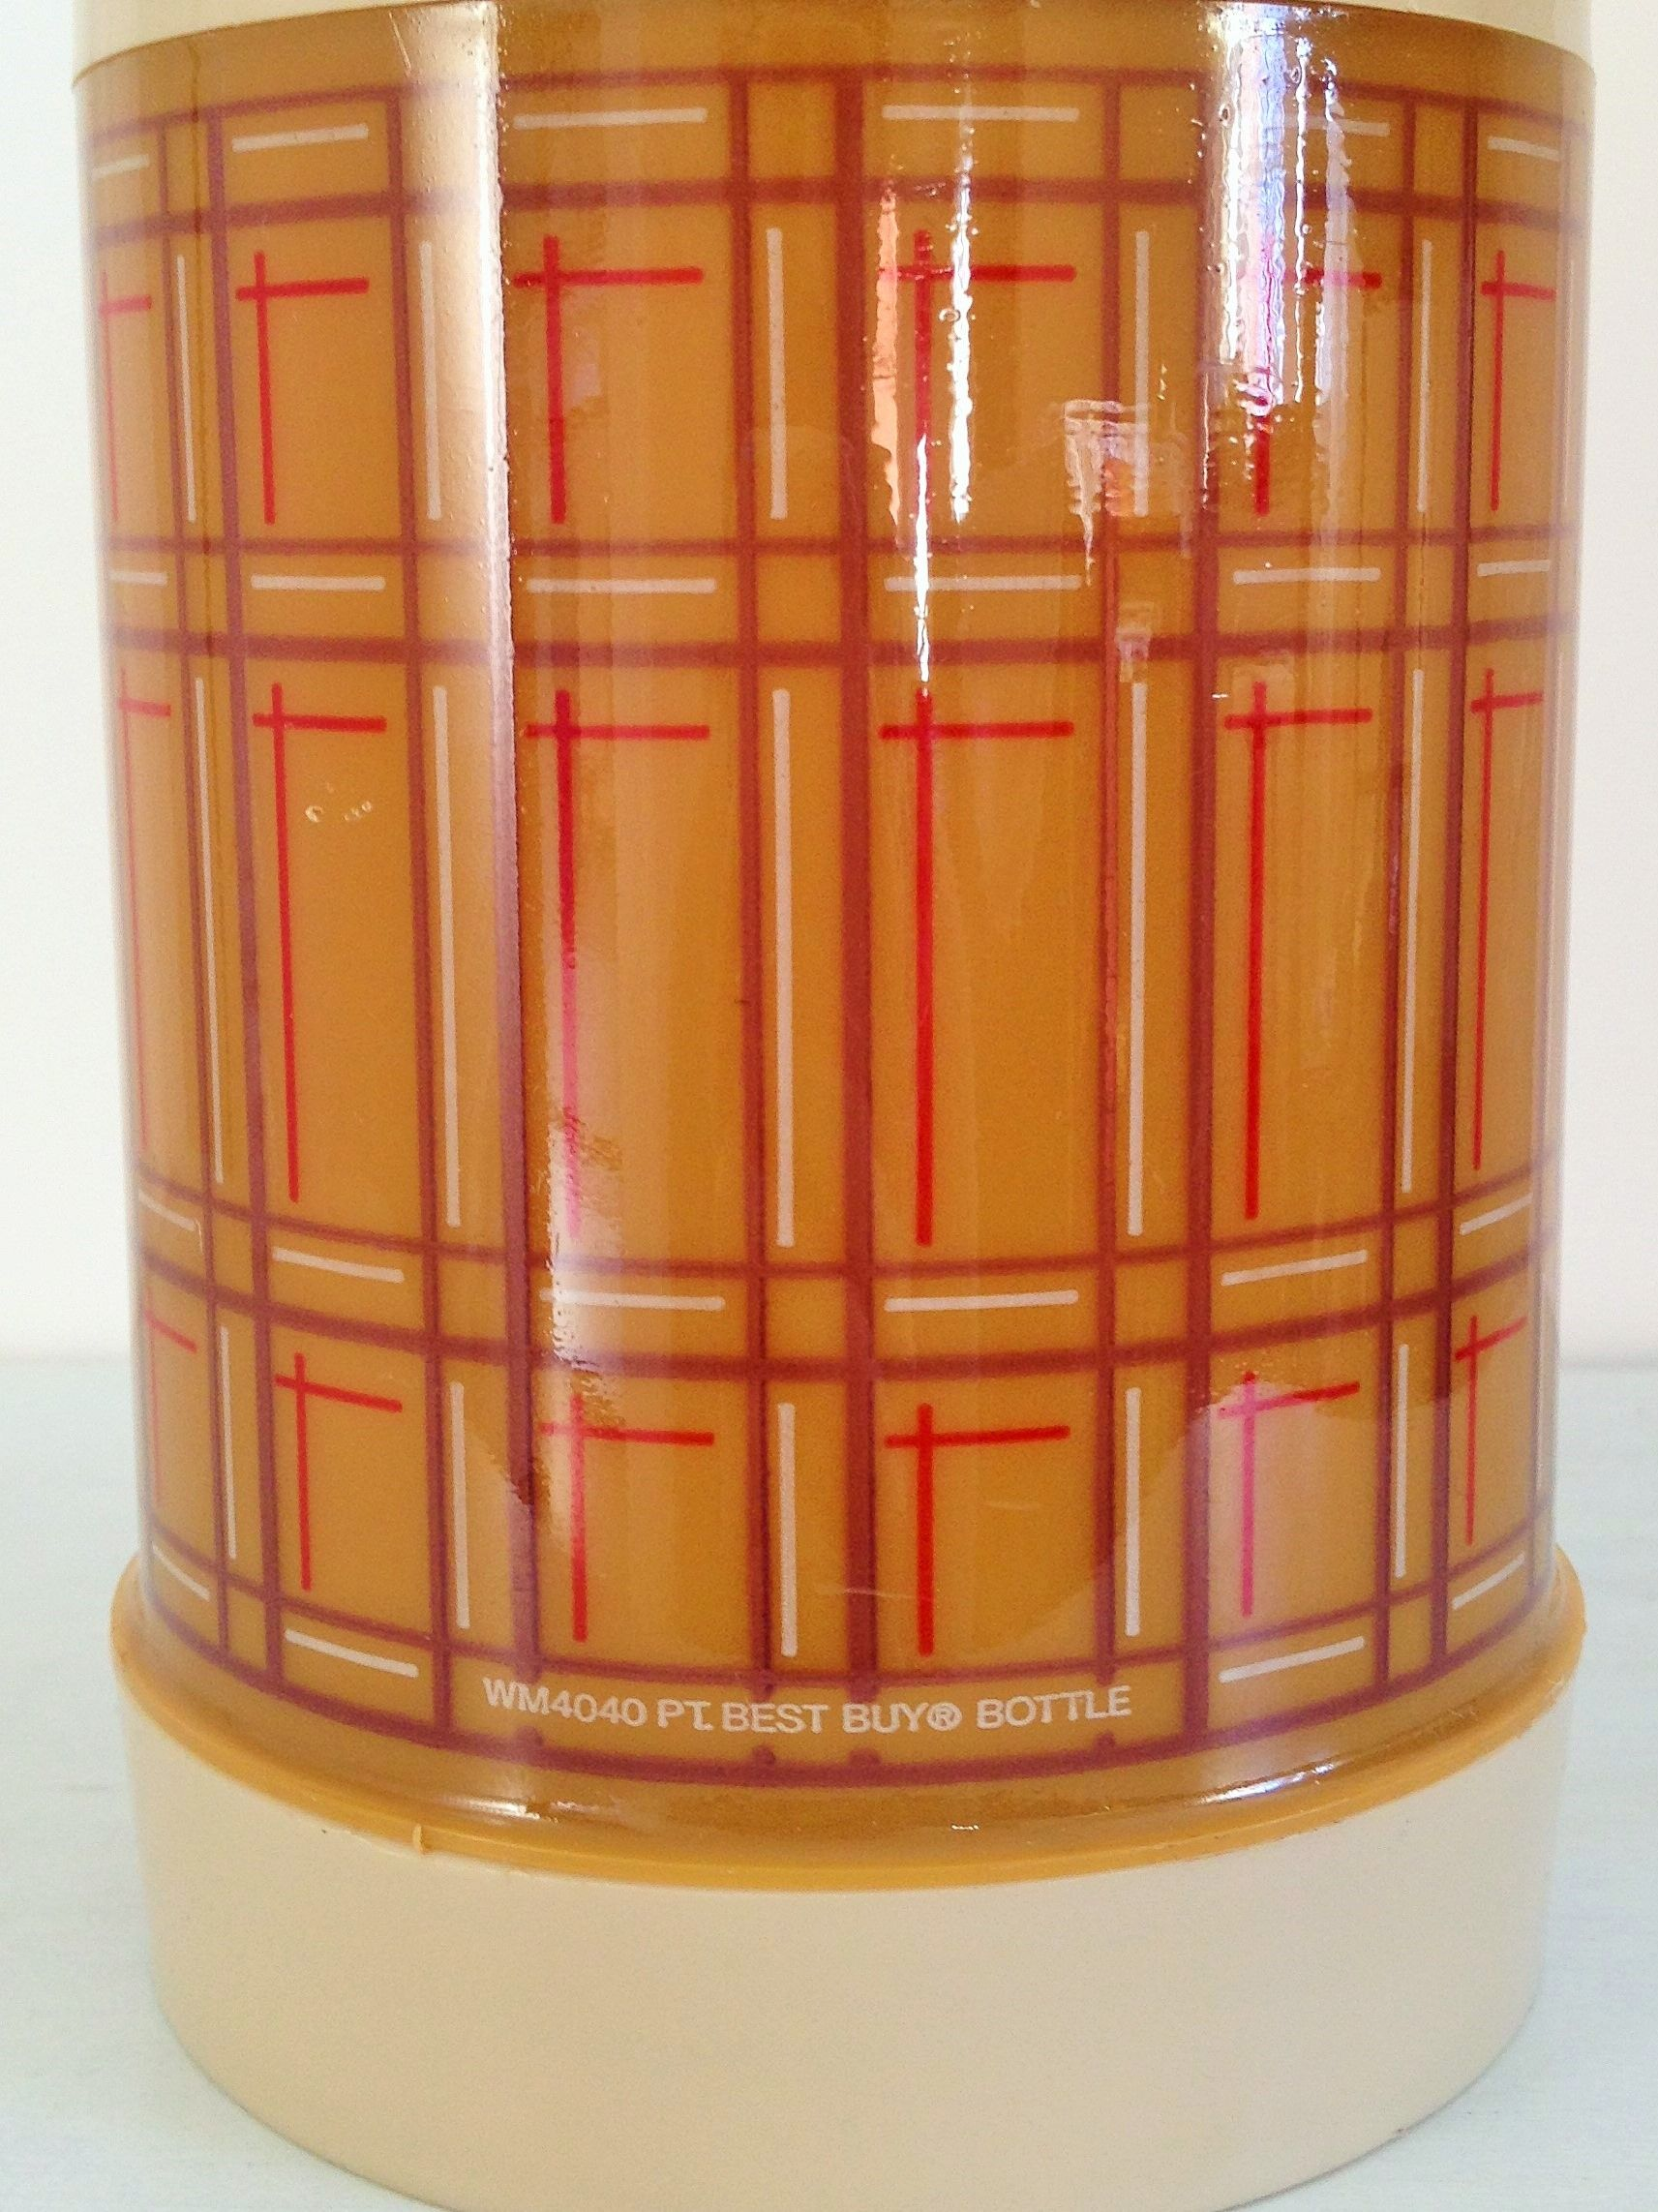 Vintage wide mouth Aladdin thermos in retro plaid, brown, beige and red. Old school plastic thermos great for soups and stews, ready for lunchtime.